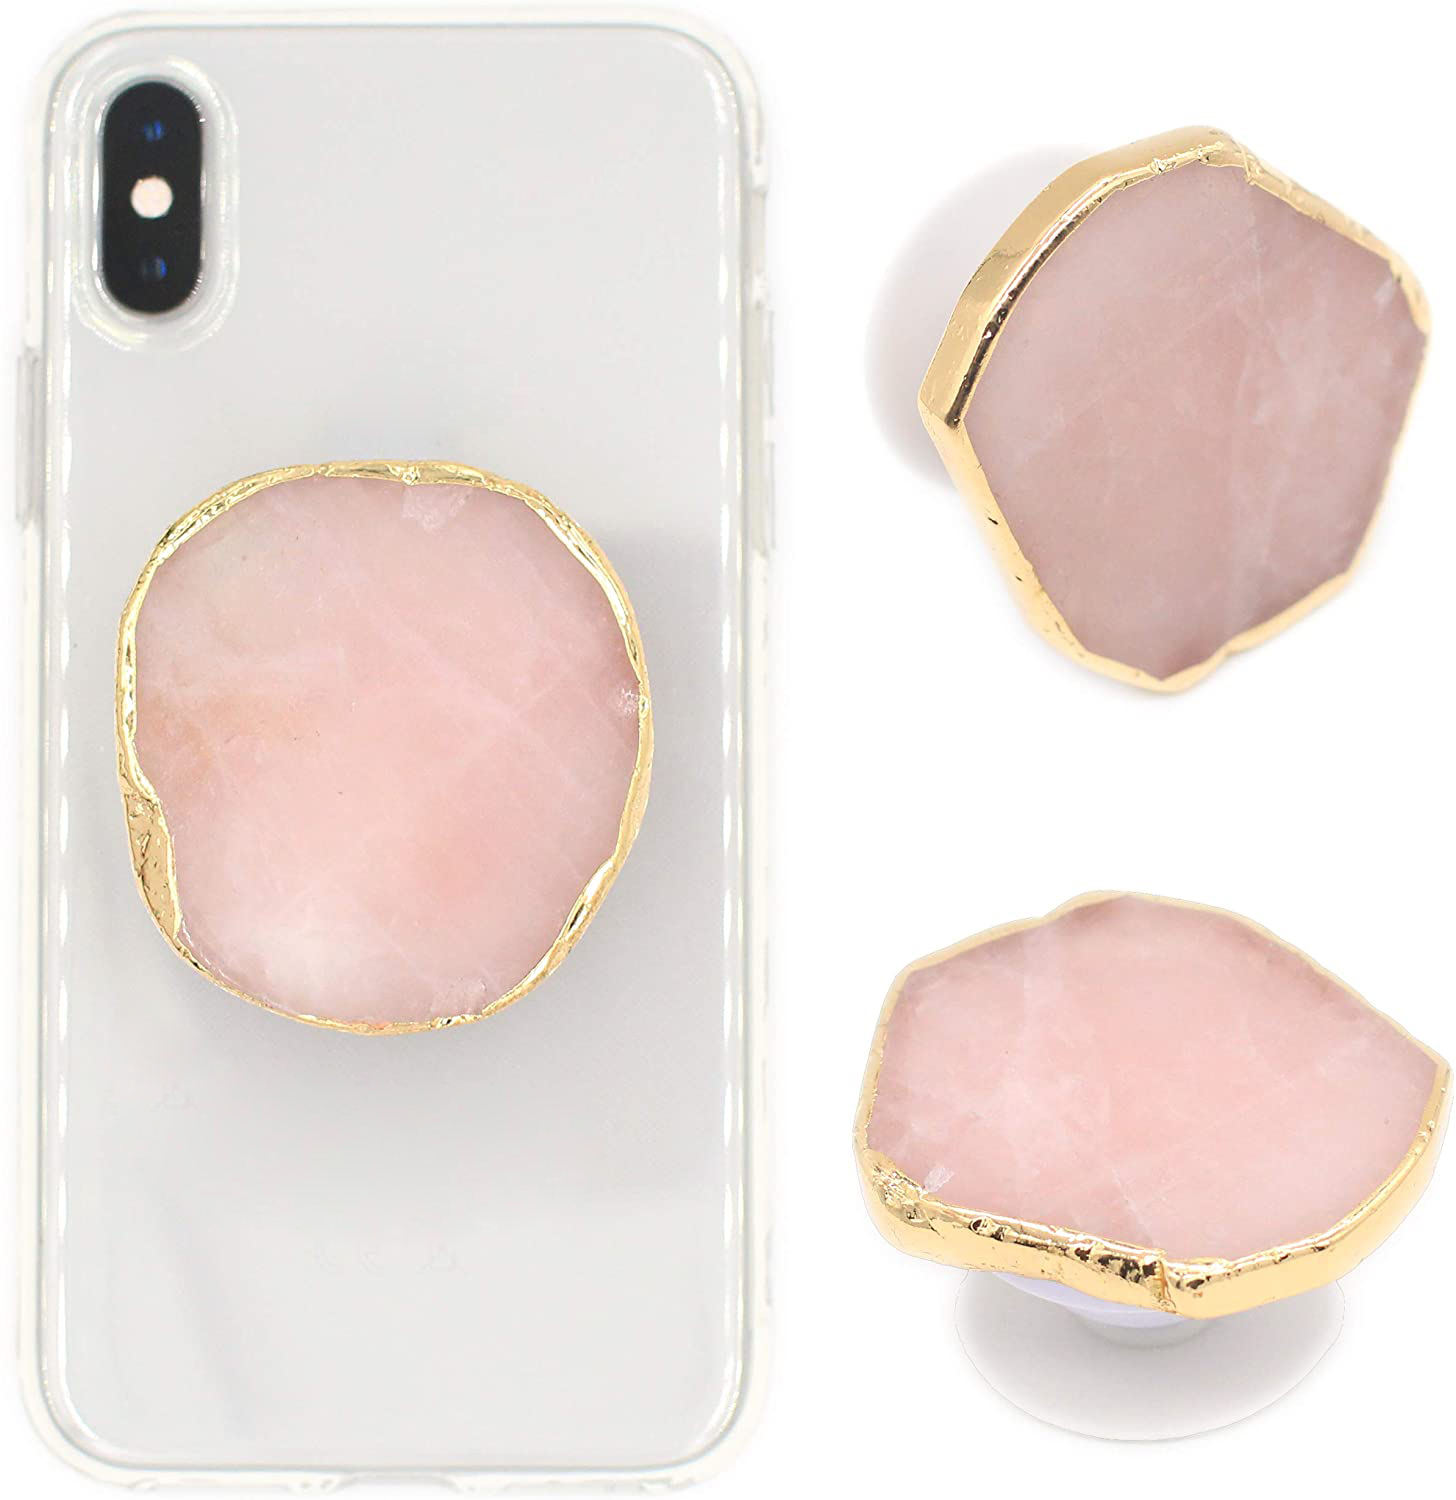 2021 popular INS hot selling agate stone phone stand accessorie mobile phone grip gemstone cell phone holder with factory price